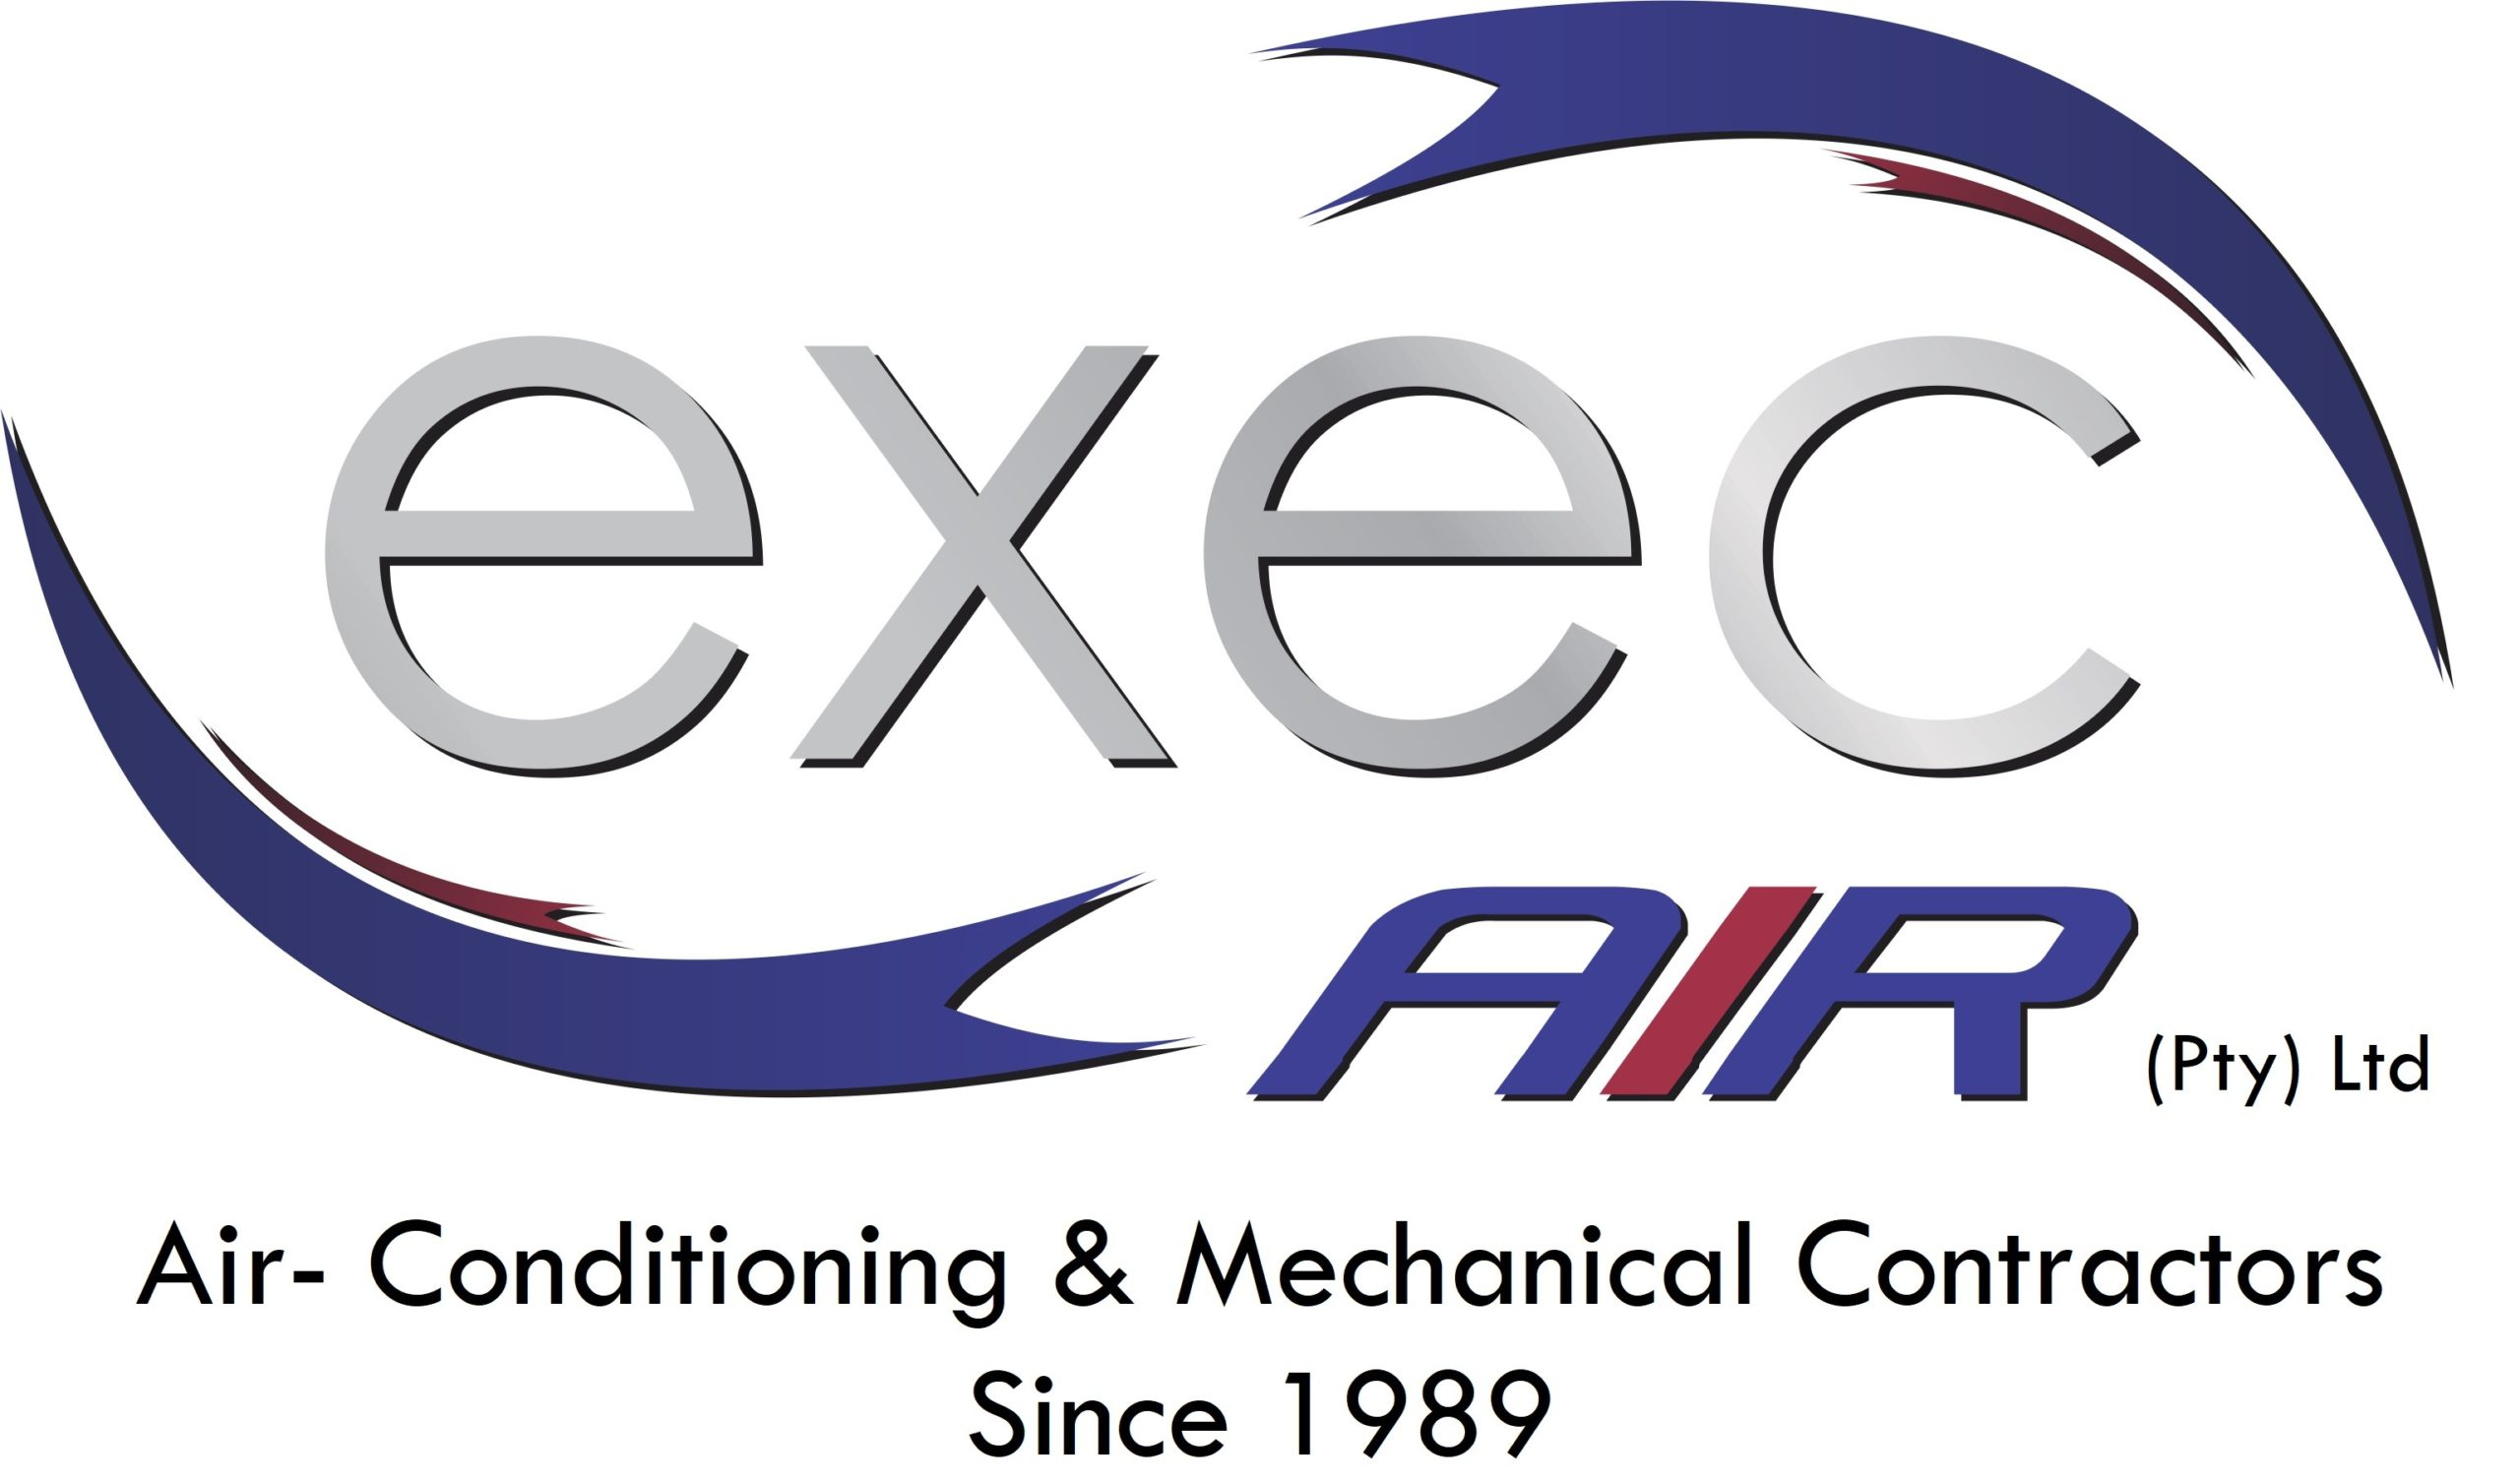 ExecAir Air-Conditioning